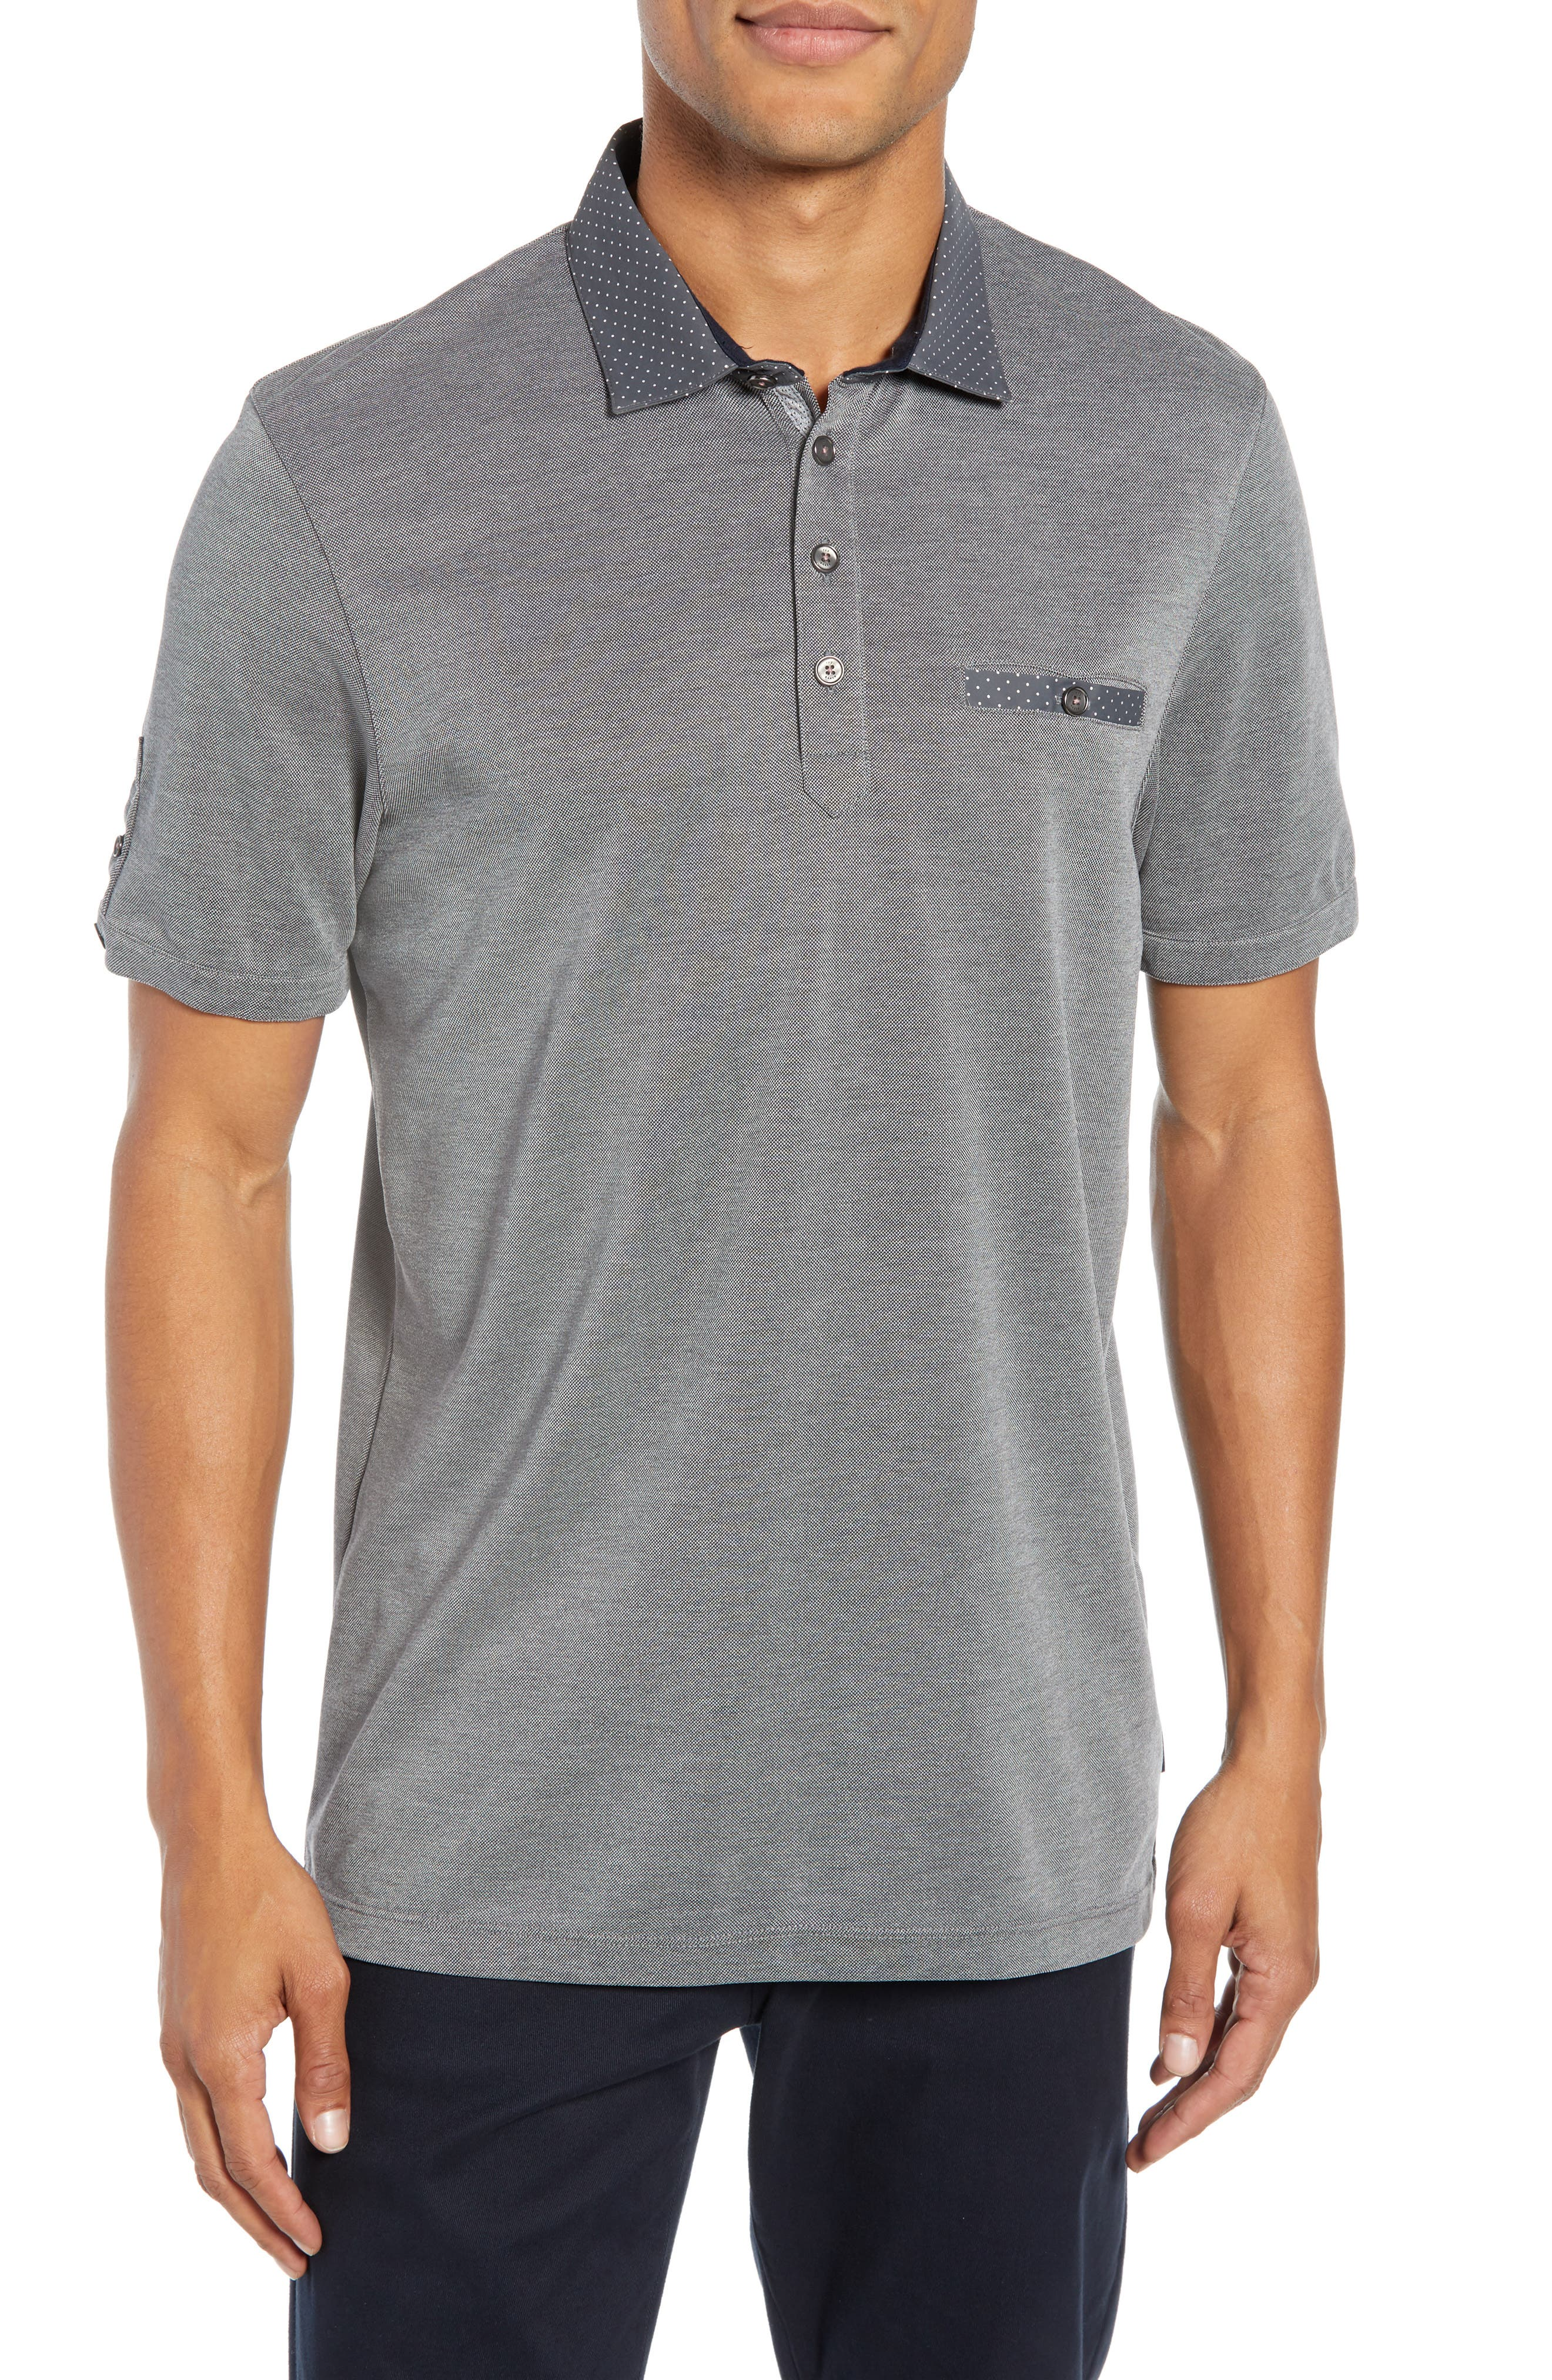 TED BAKER Marsh Polynosic Regular Fit Polo Shirt in Grey